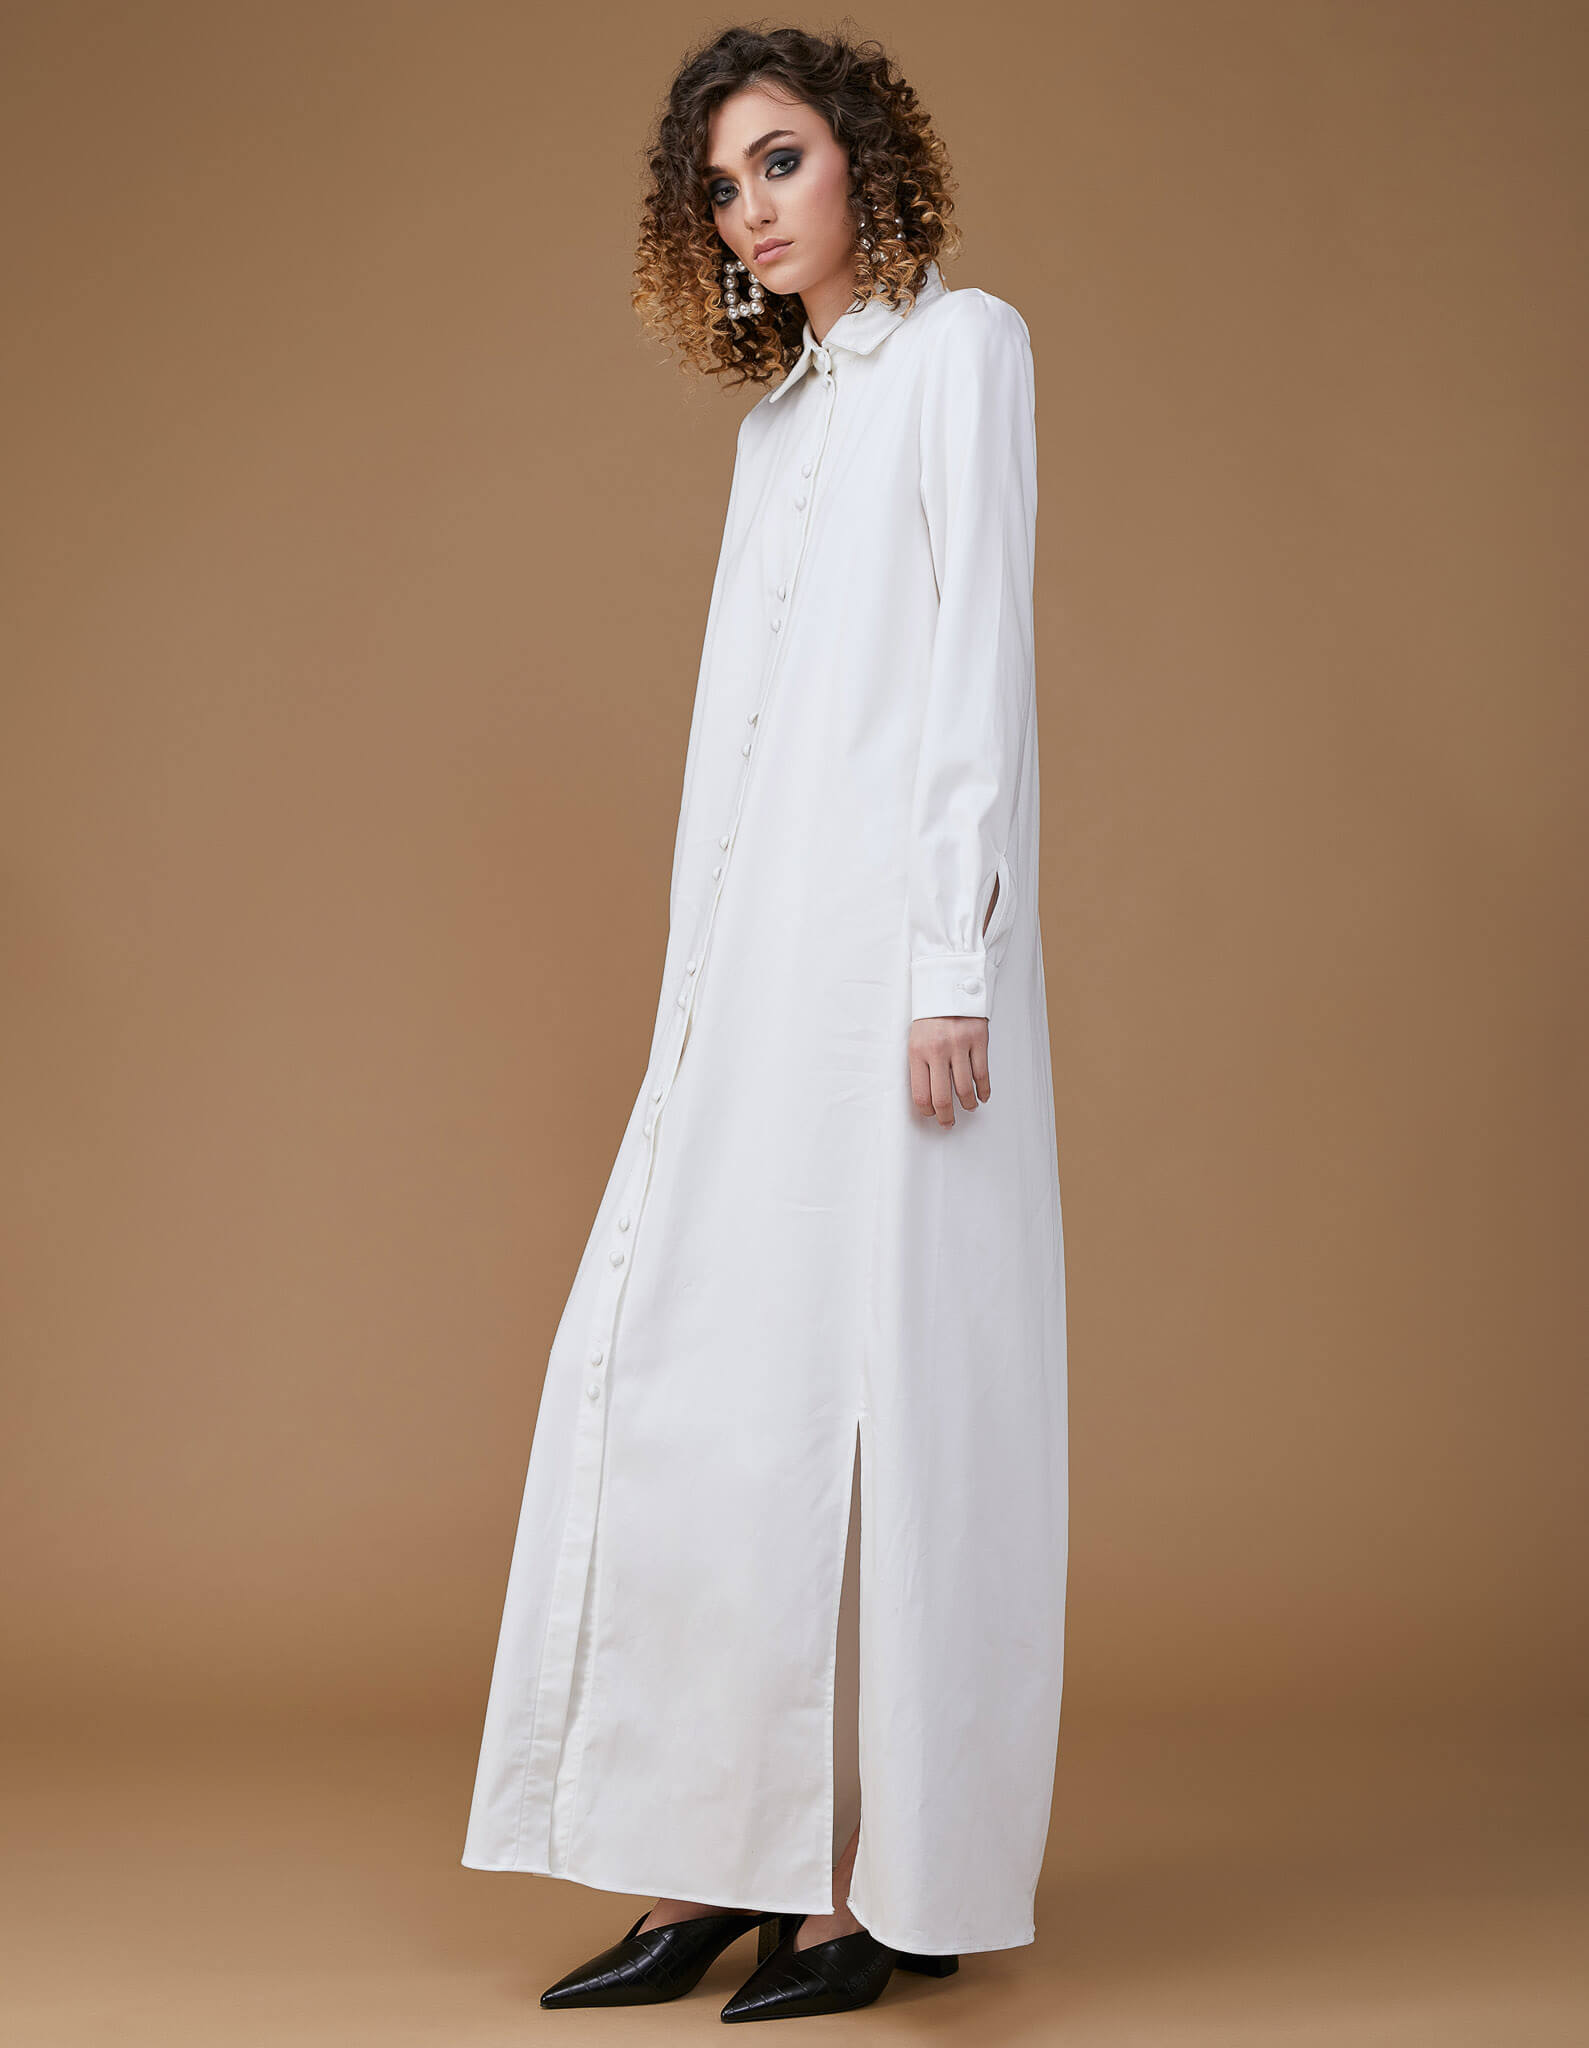 MINIMAL White Cooton Shirt-Dress